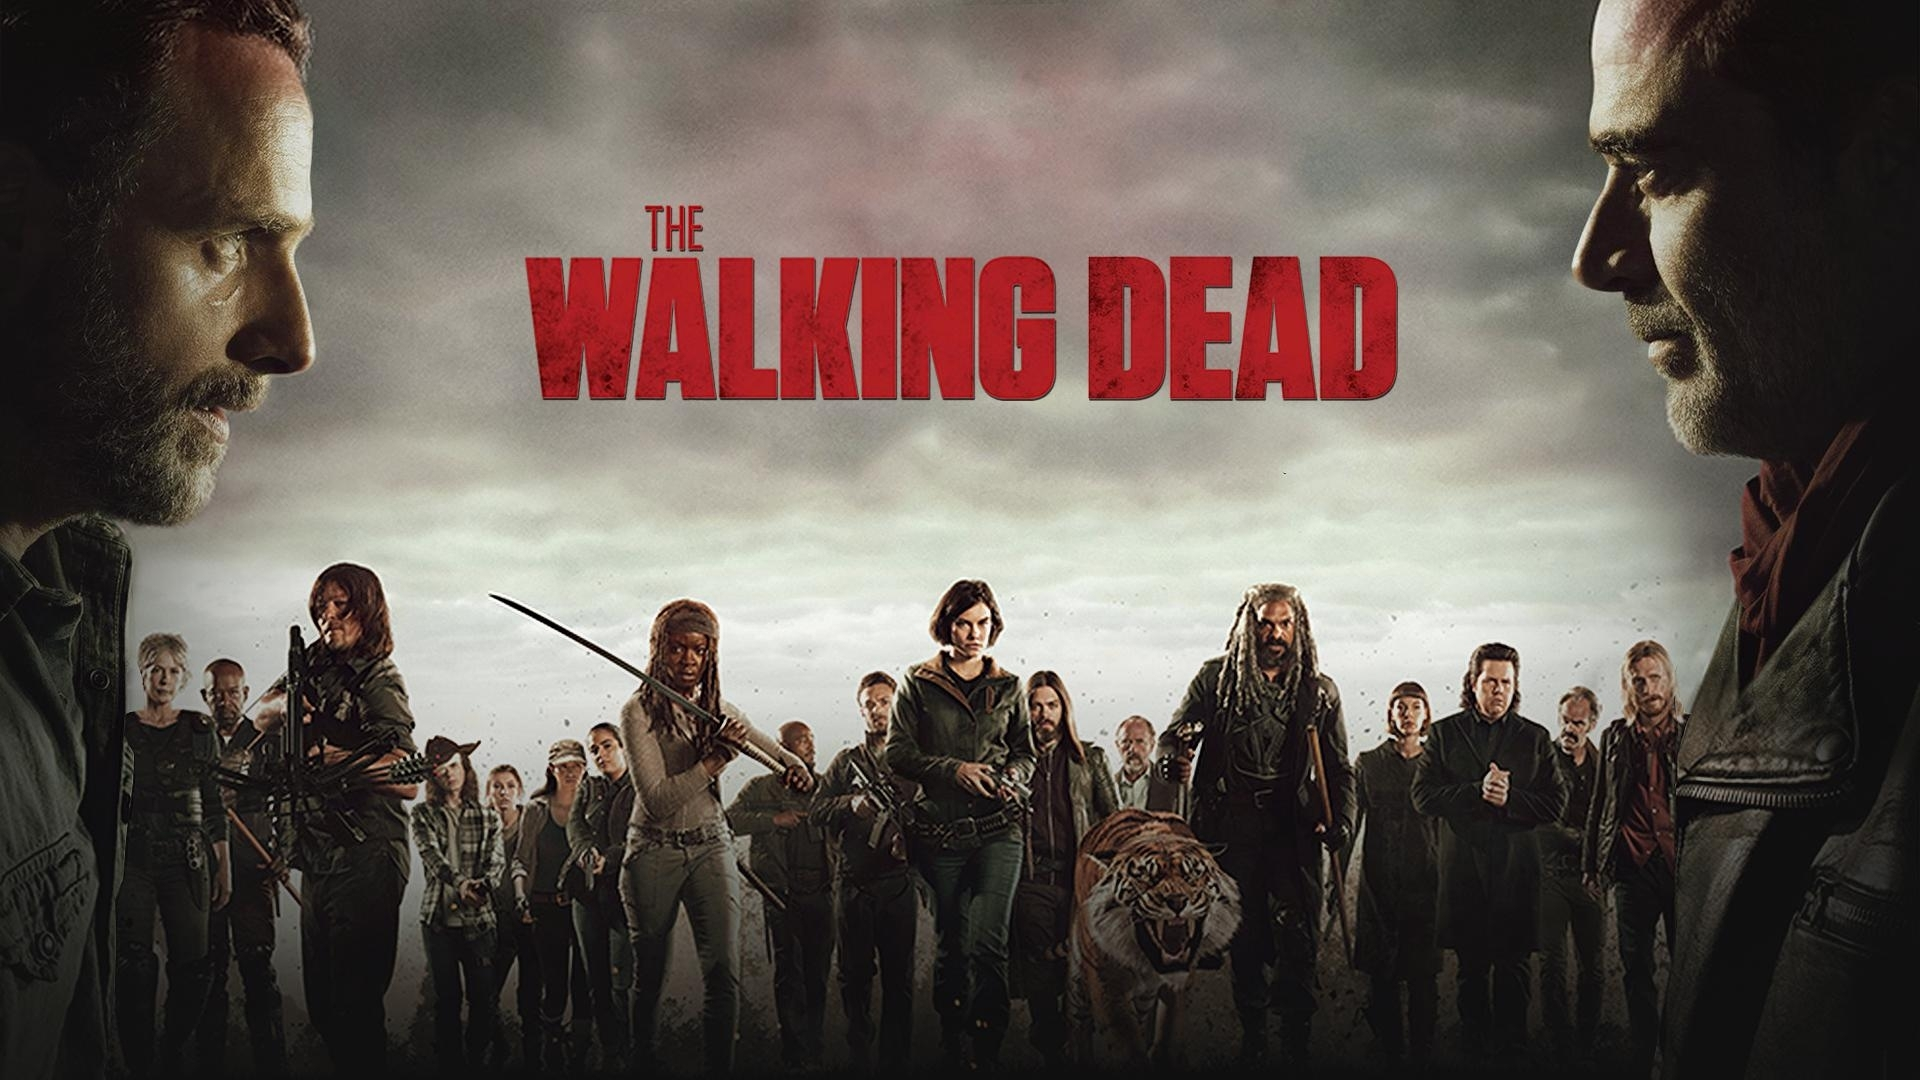 the walking dead season 8 wallpapers - wallpaper cave